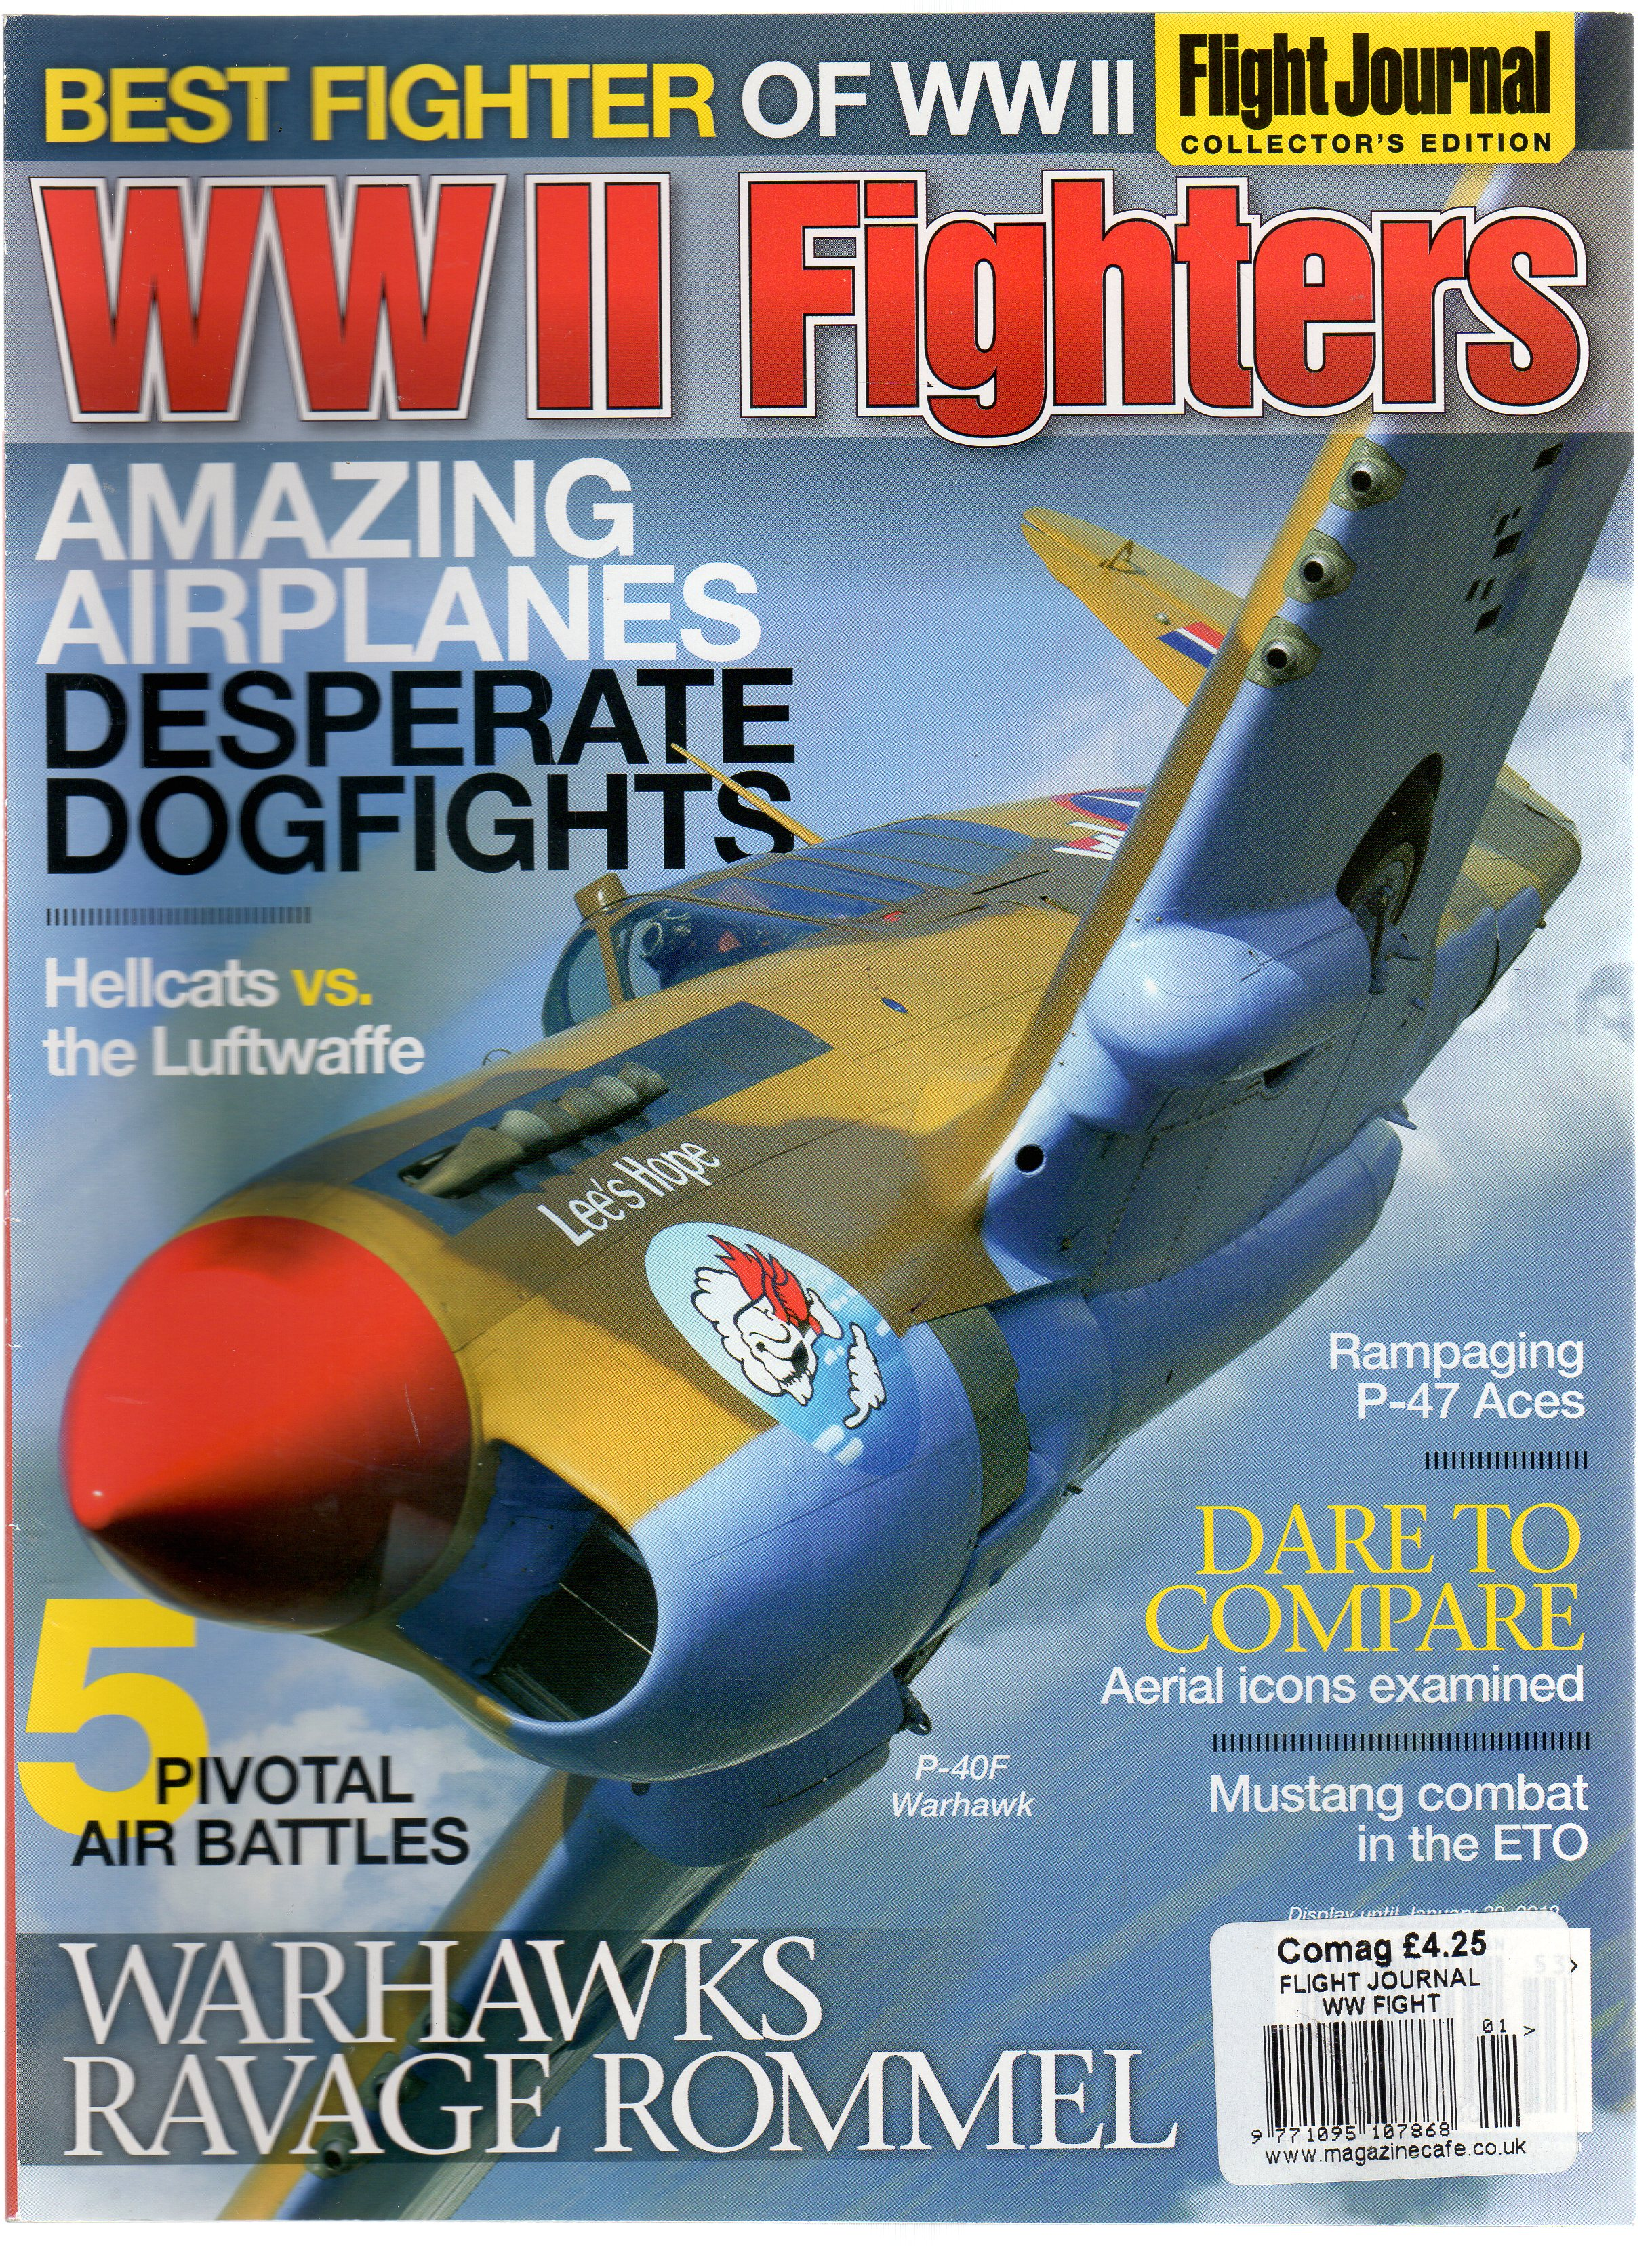 Image for WW II Fighters - Magazine Flight Journal Collector's Edition